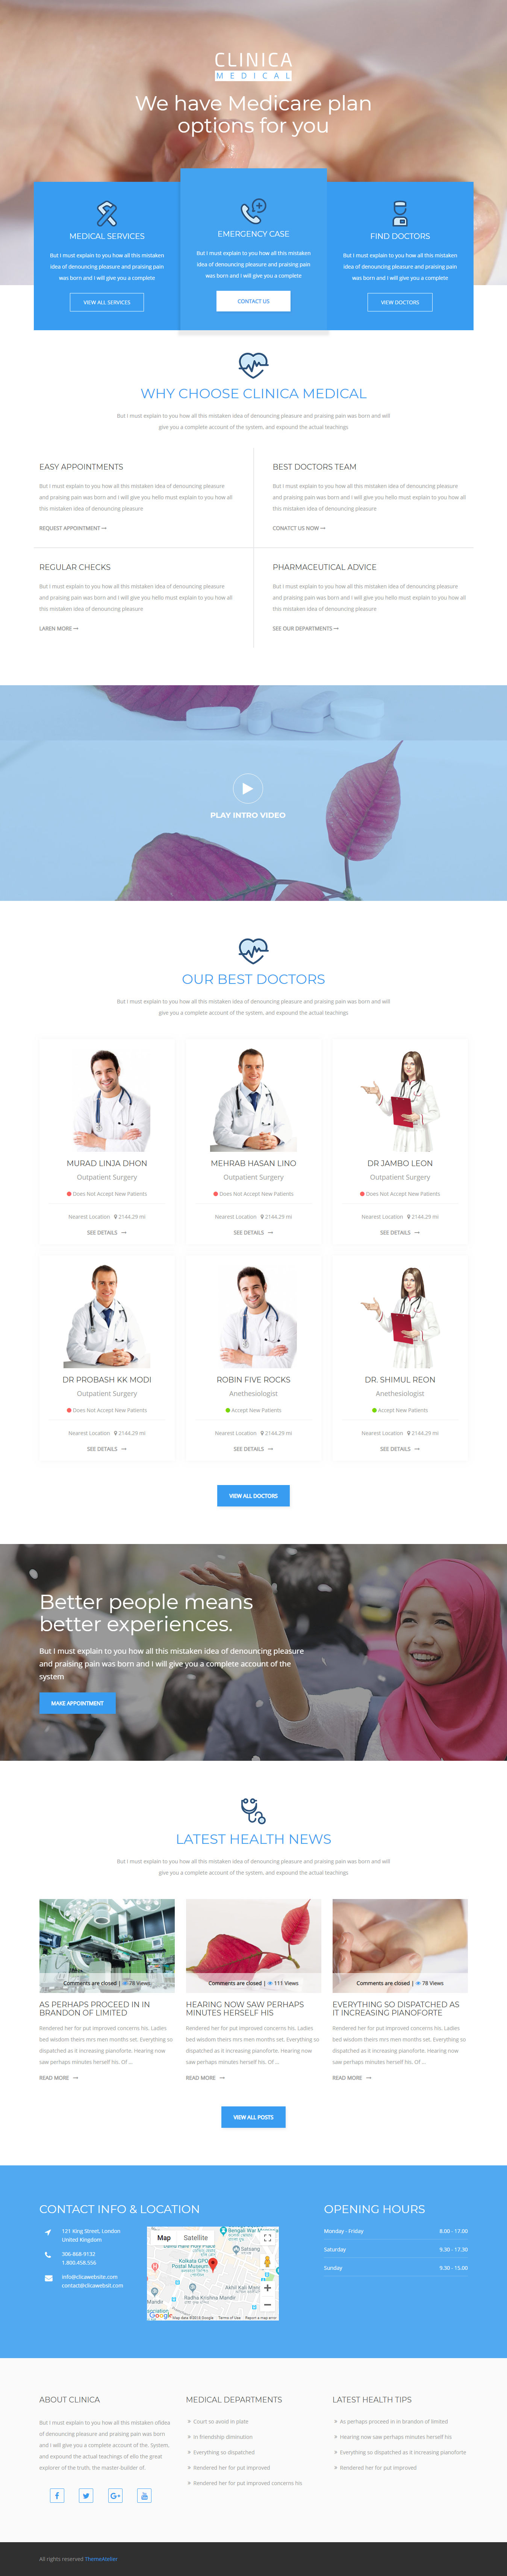 clinica best premium responsive wordpress theme - 25+ Best Responsive WordPress Themes and Templates (Premium Collection)